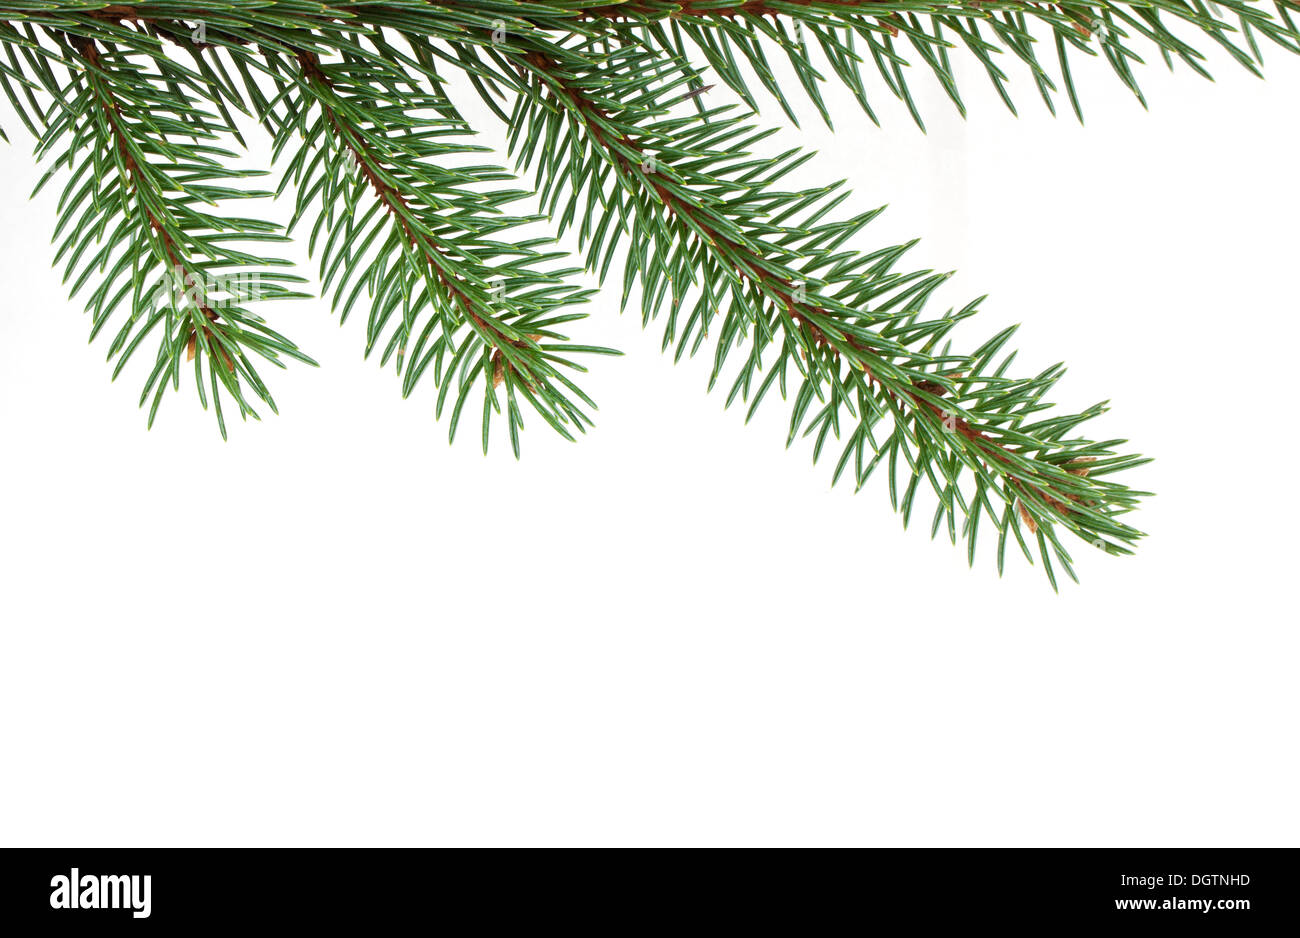 Pine tree branch isolated on white background - Stock Image